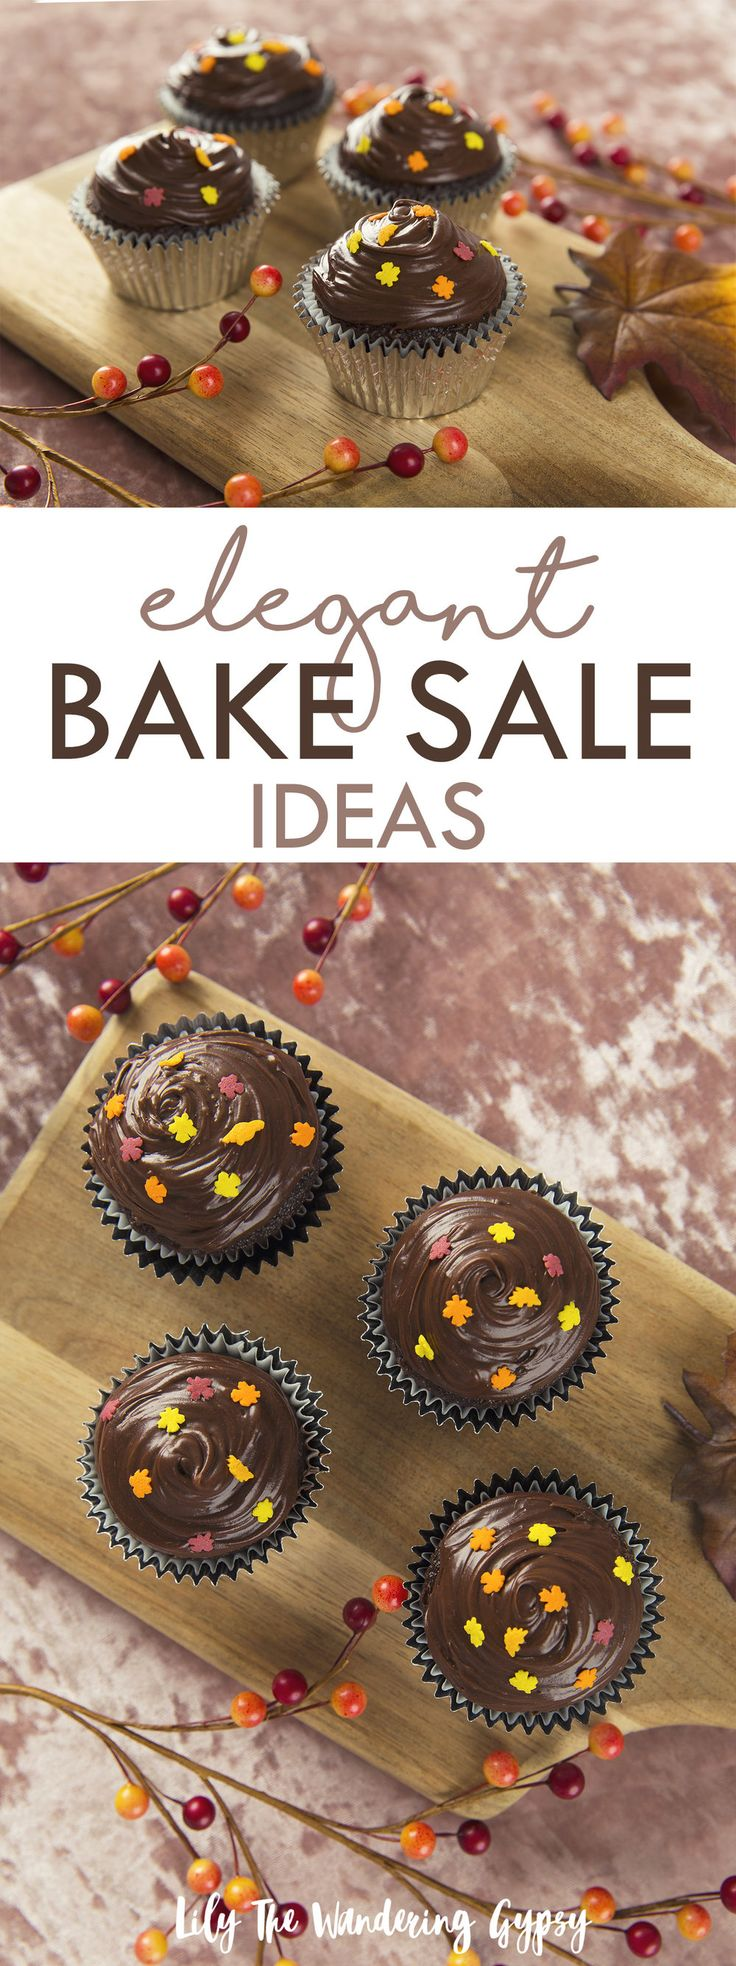 Fall Bake Sale Tips! Help Raise Money For Kids and Families In Need with Ronald McDonald House Charities! Find out here! #ad #RaiseLove #forRMHC